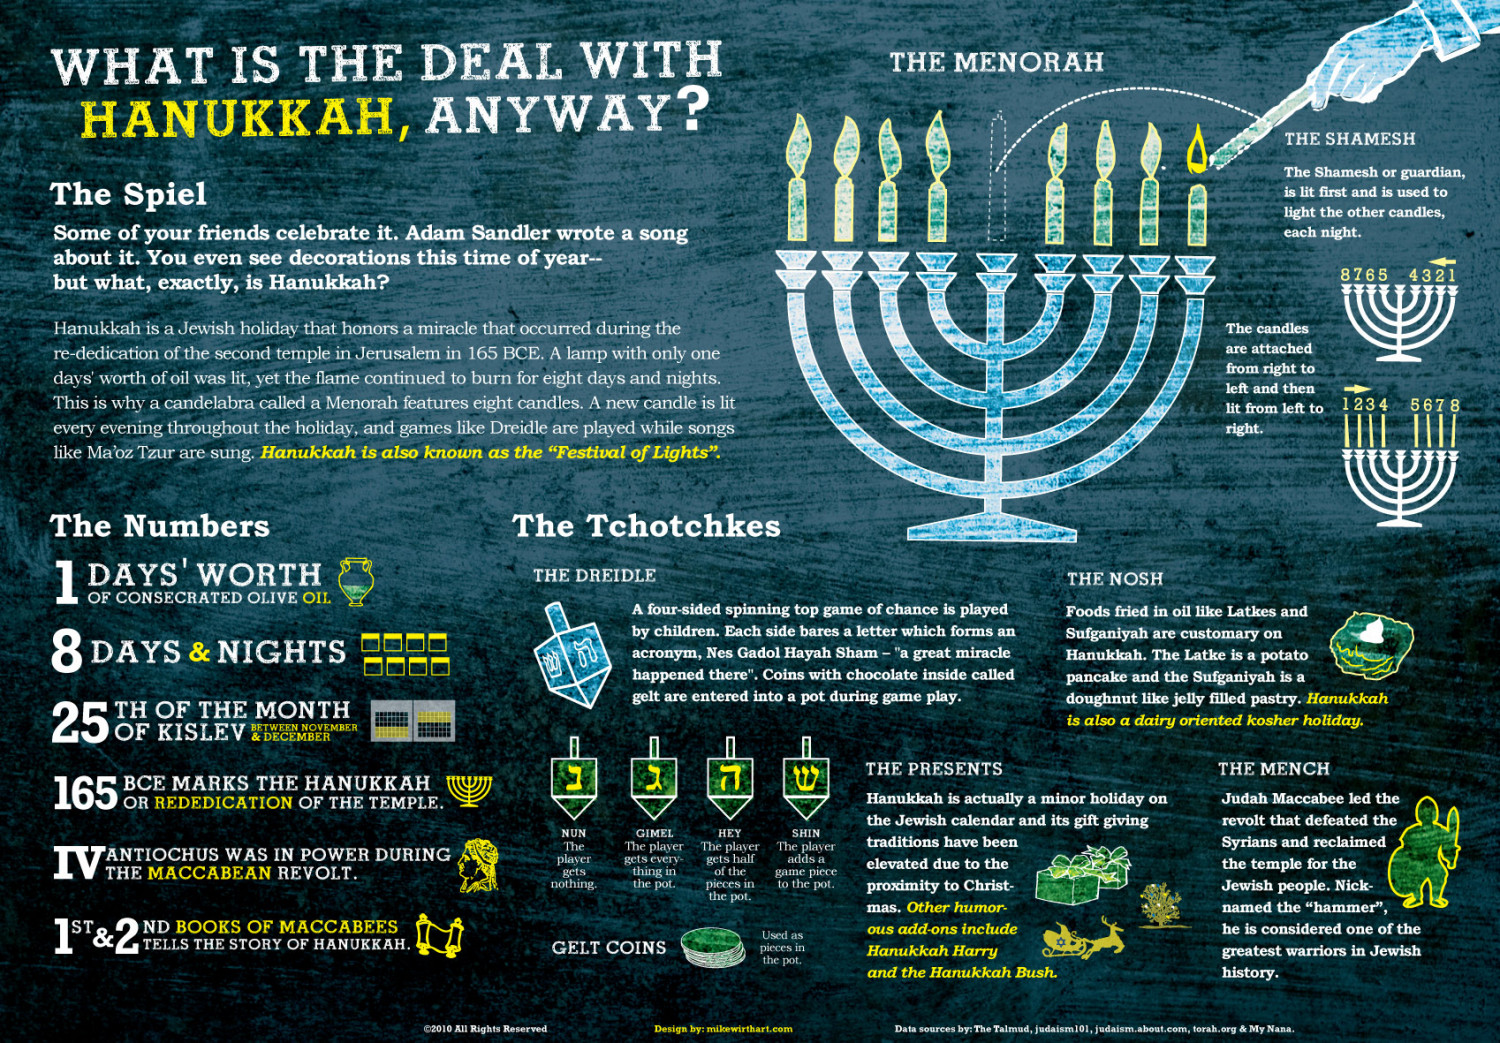 What's the Deal With Hanukkah? Infographic